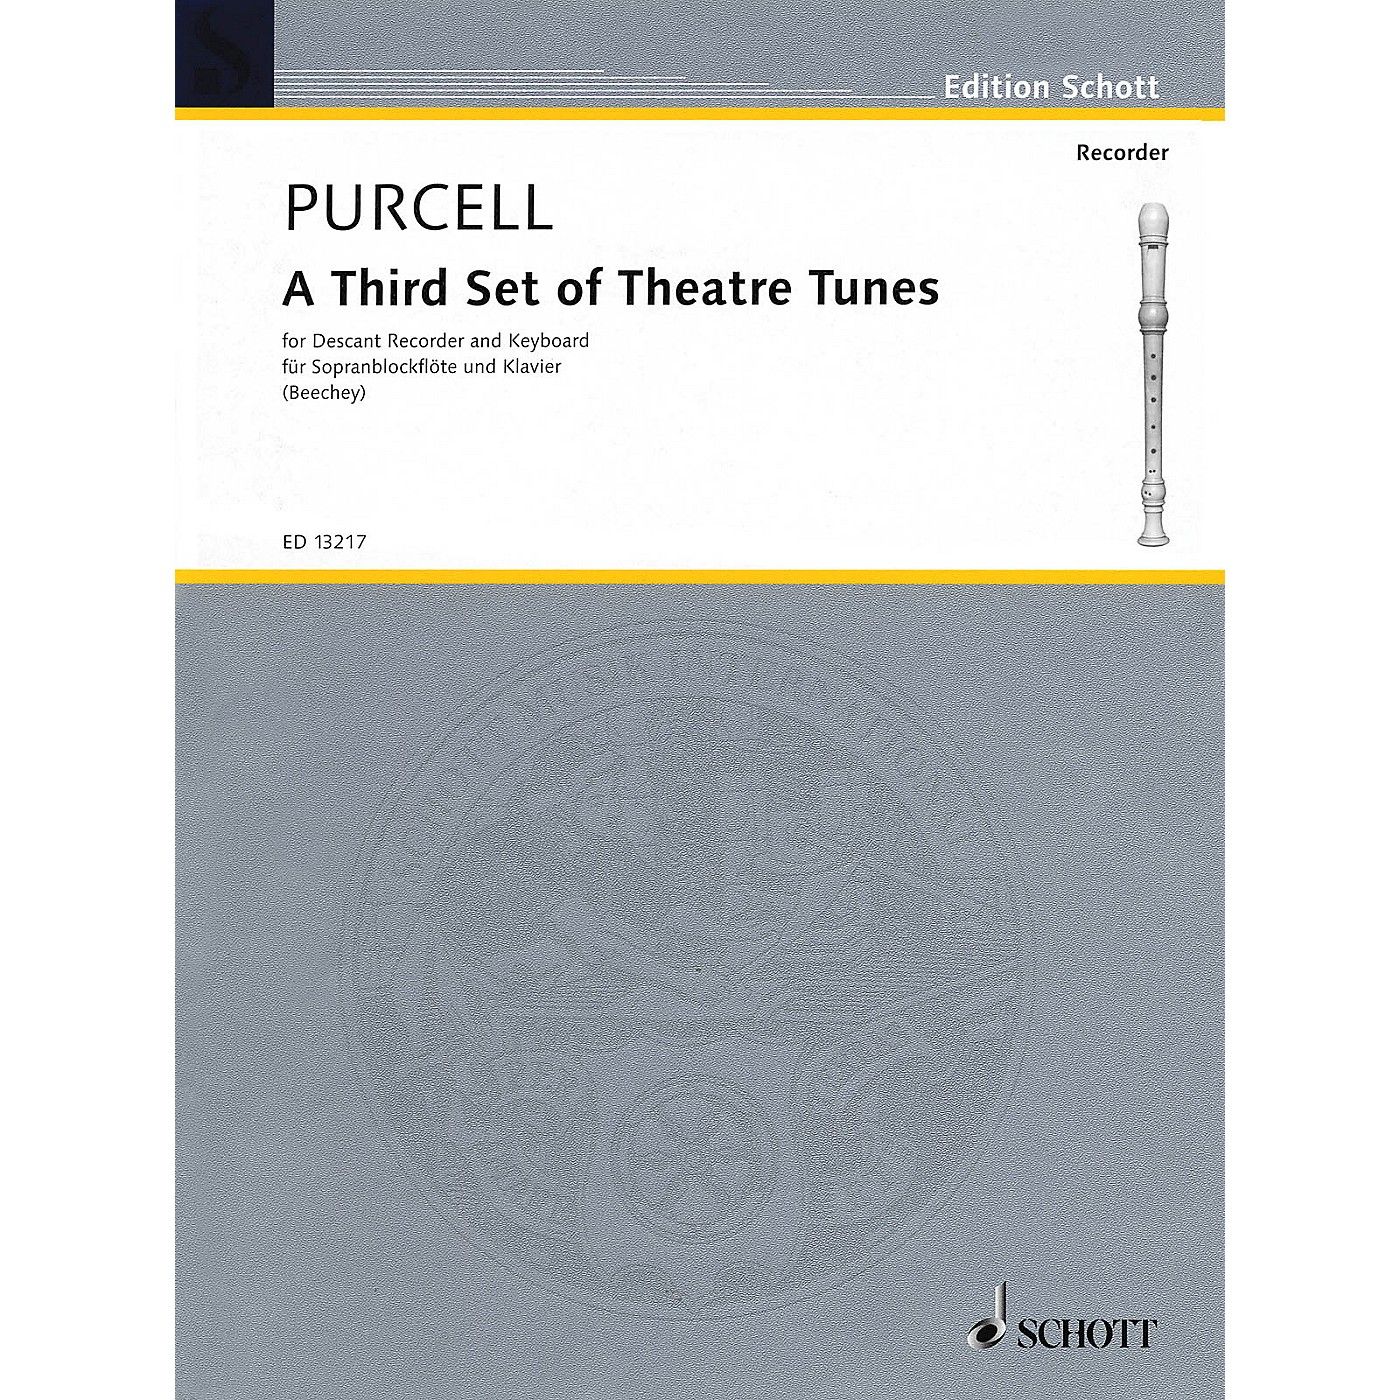 Schott A Third Set of Theatre Tunes (Descant Recorder and Piano) Woodwind Series CD thumbnail